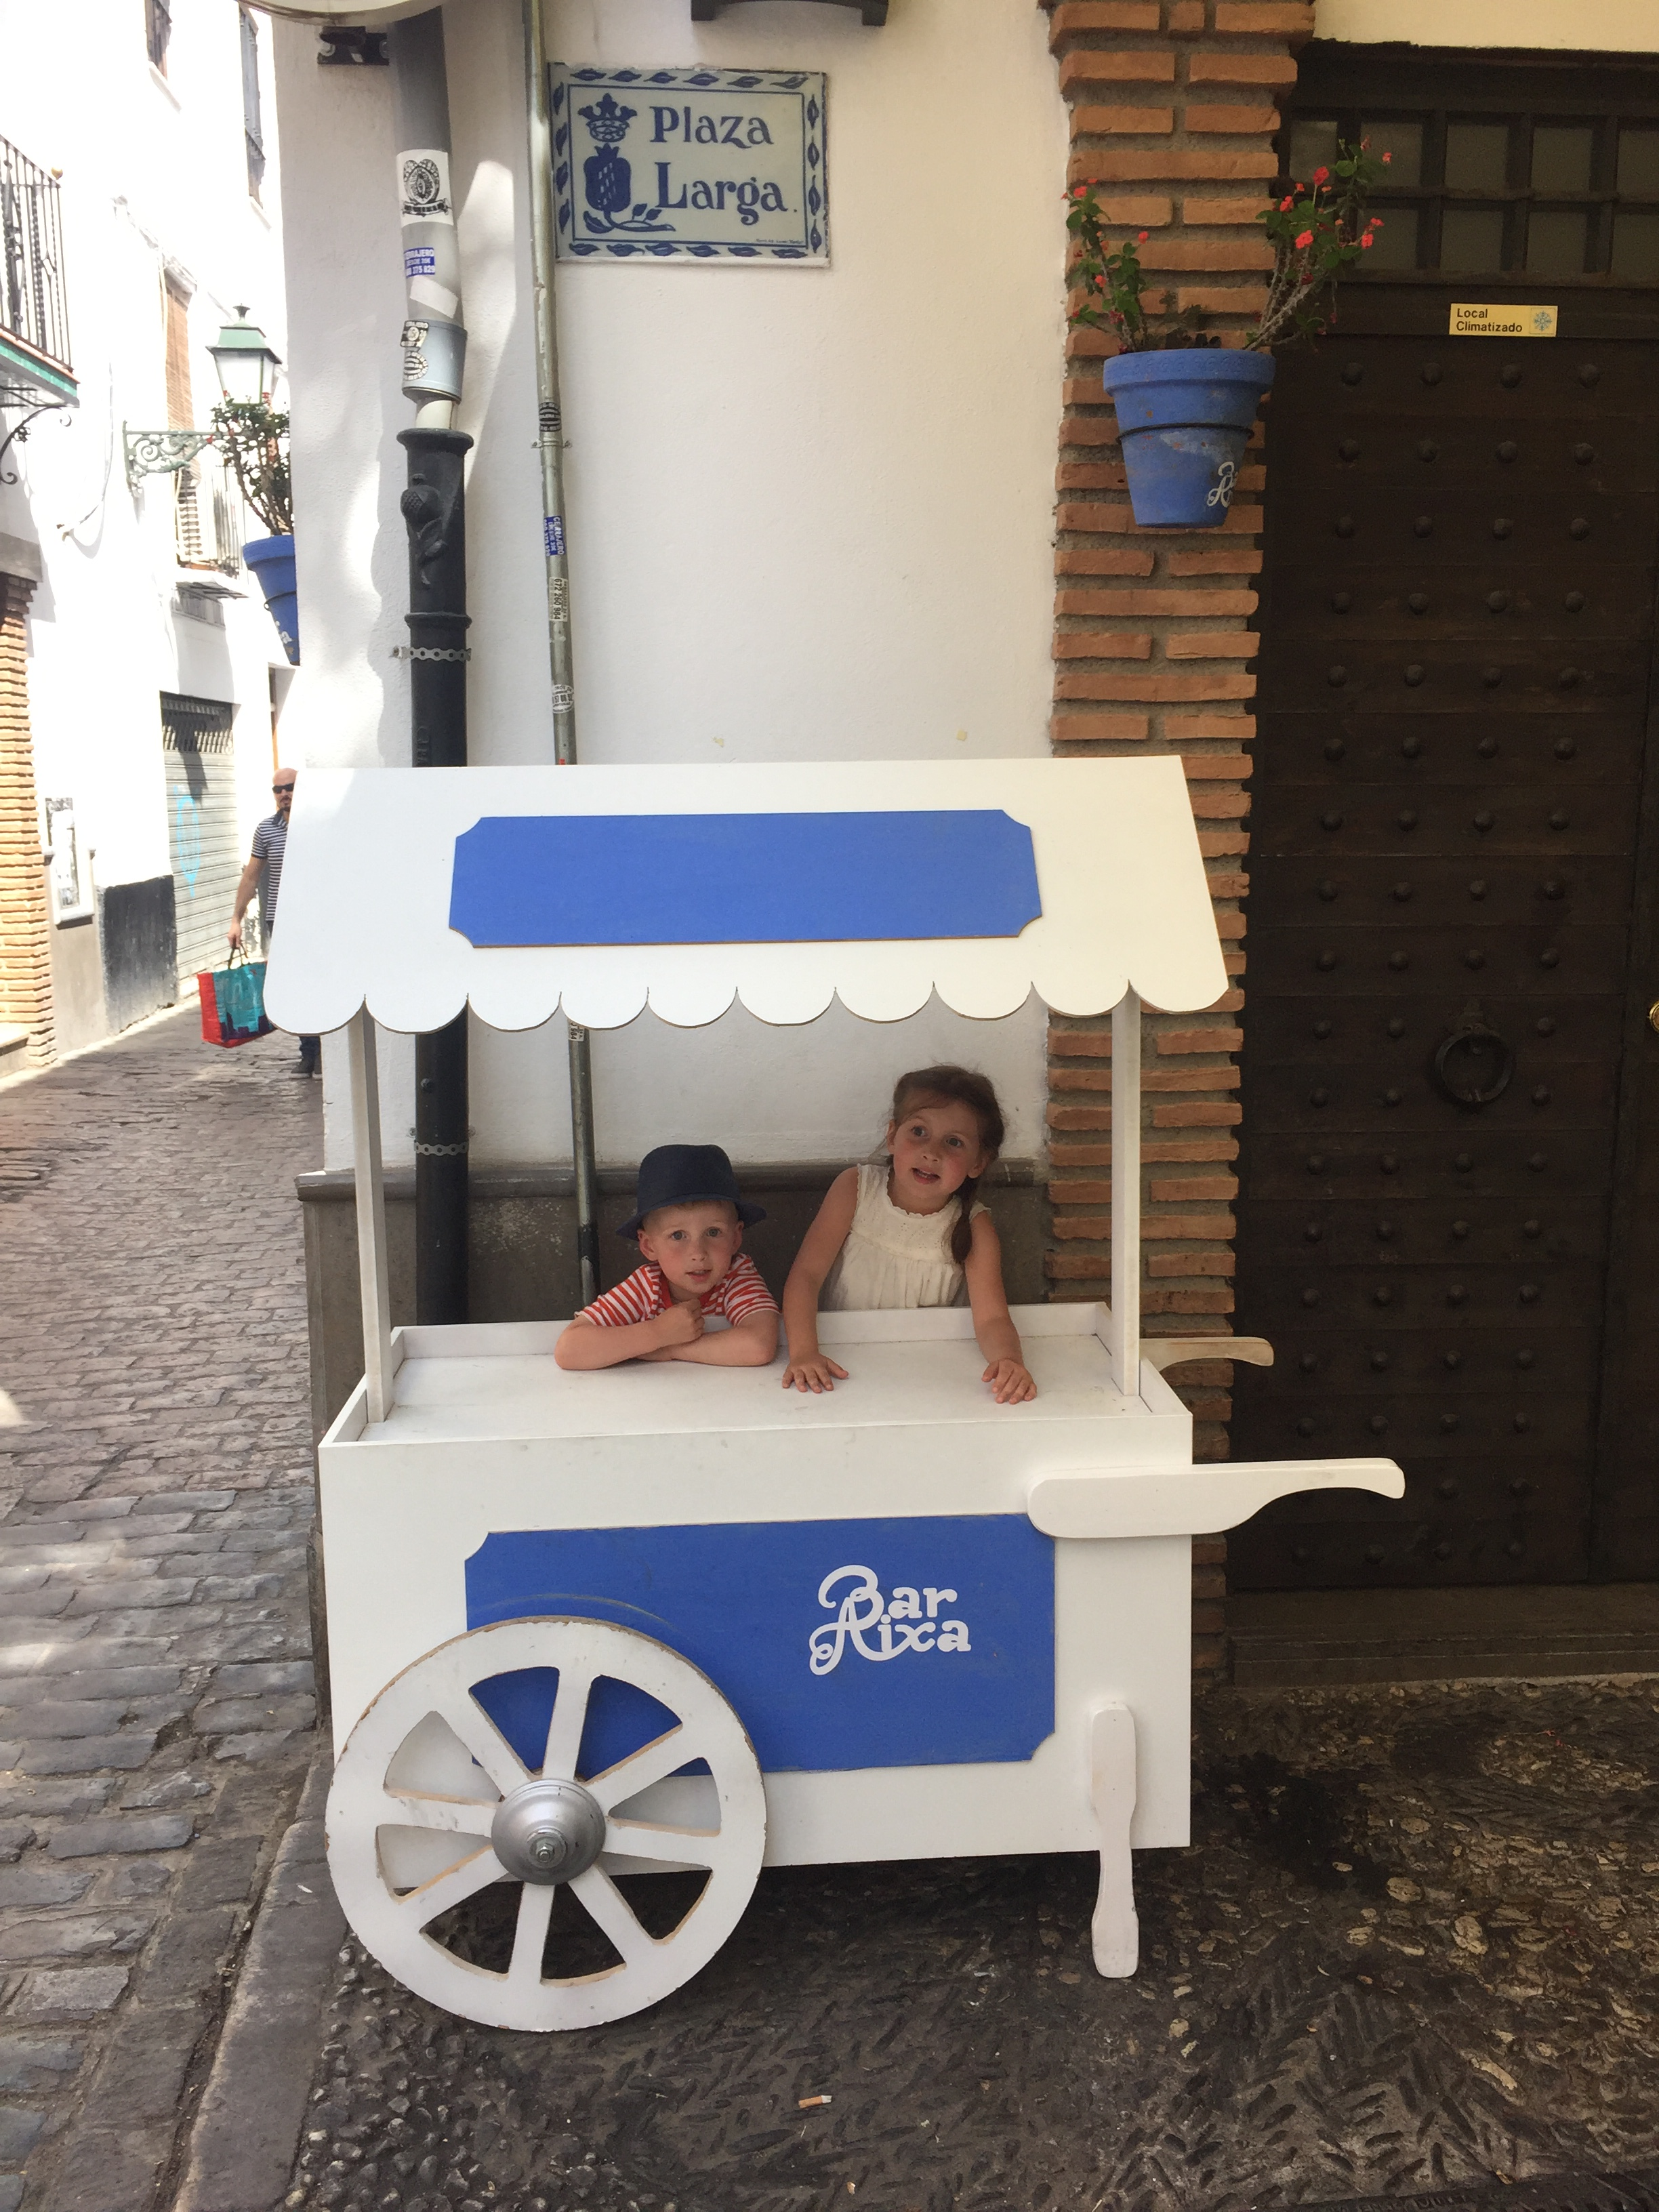 Due to difficult restaurant hours, we kept coming back to Bar Aixa on the square in the Albayzin, where the kids were kept busy by this stray cart.